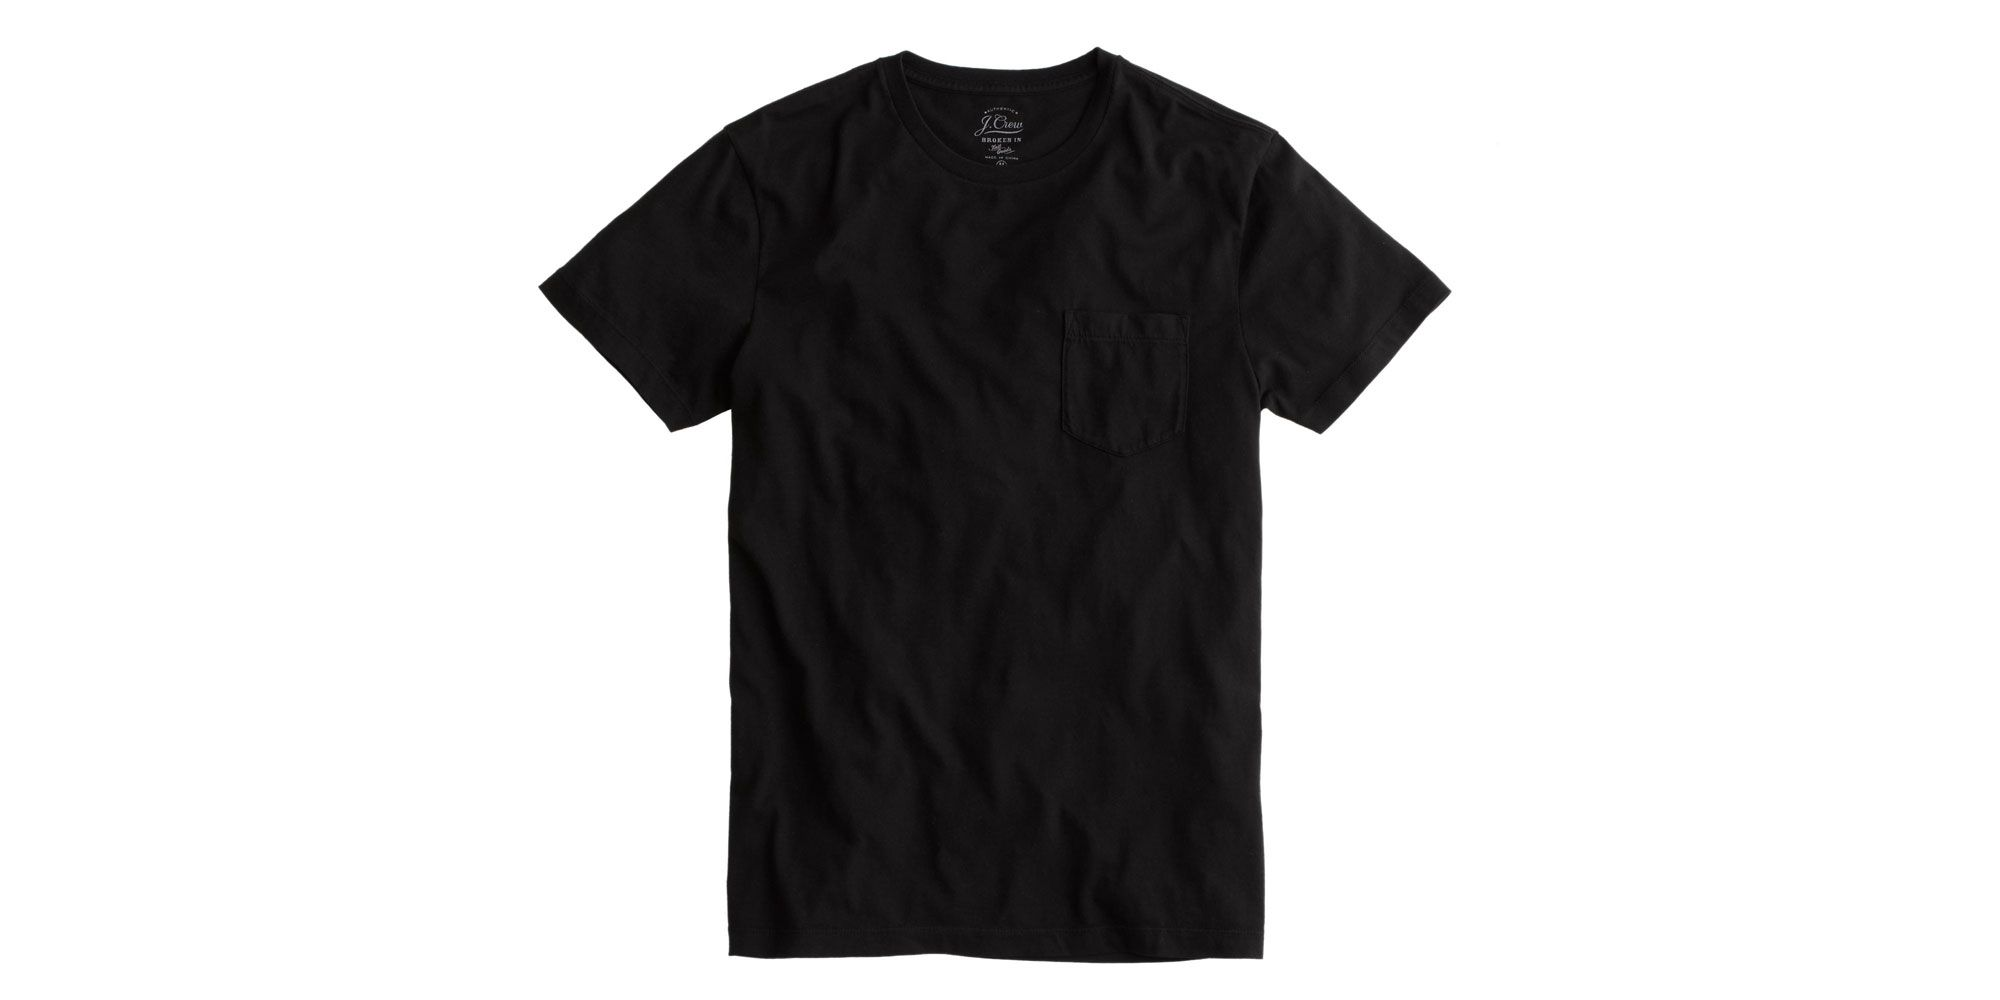 47b5e15839a The Best Black T-Shirt for Men According to Nick Wooster